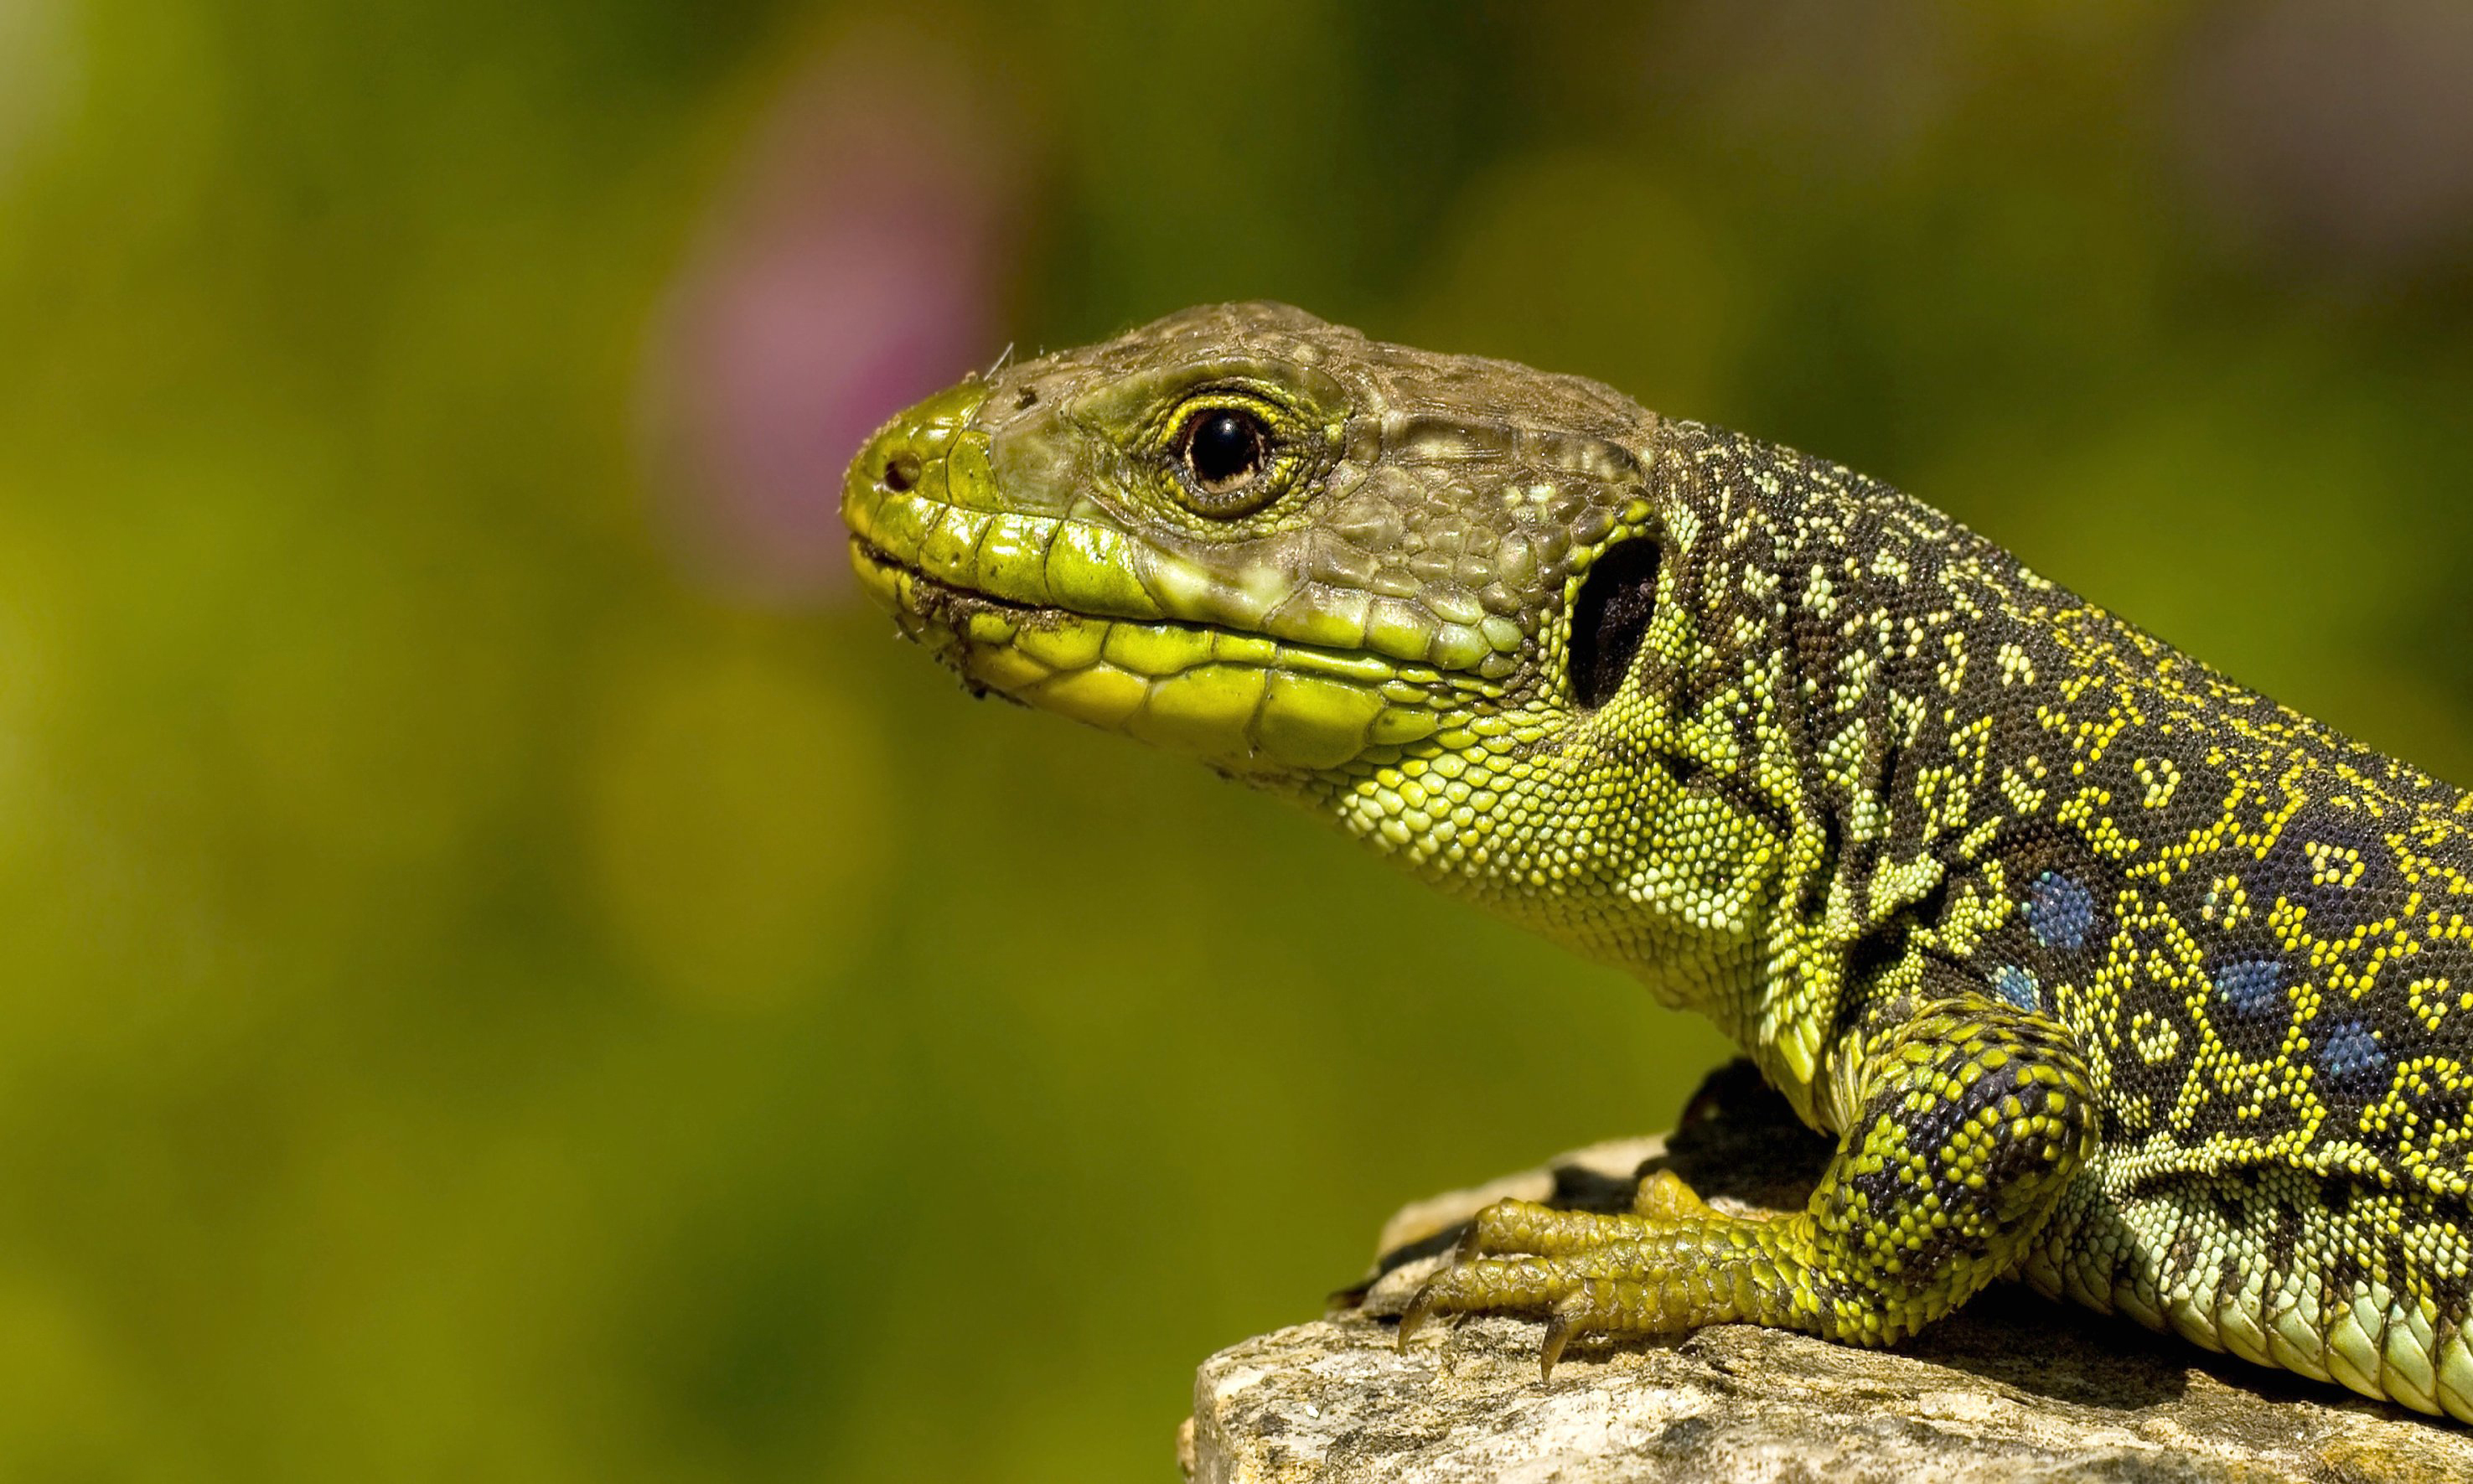 Lizard Full HD Wallpaper and Background Image | 2951x1771 ...